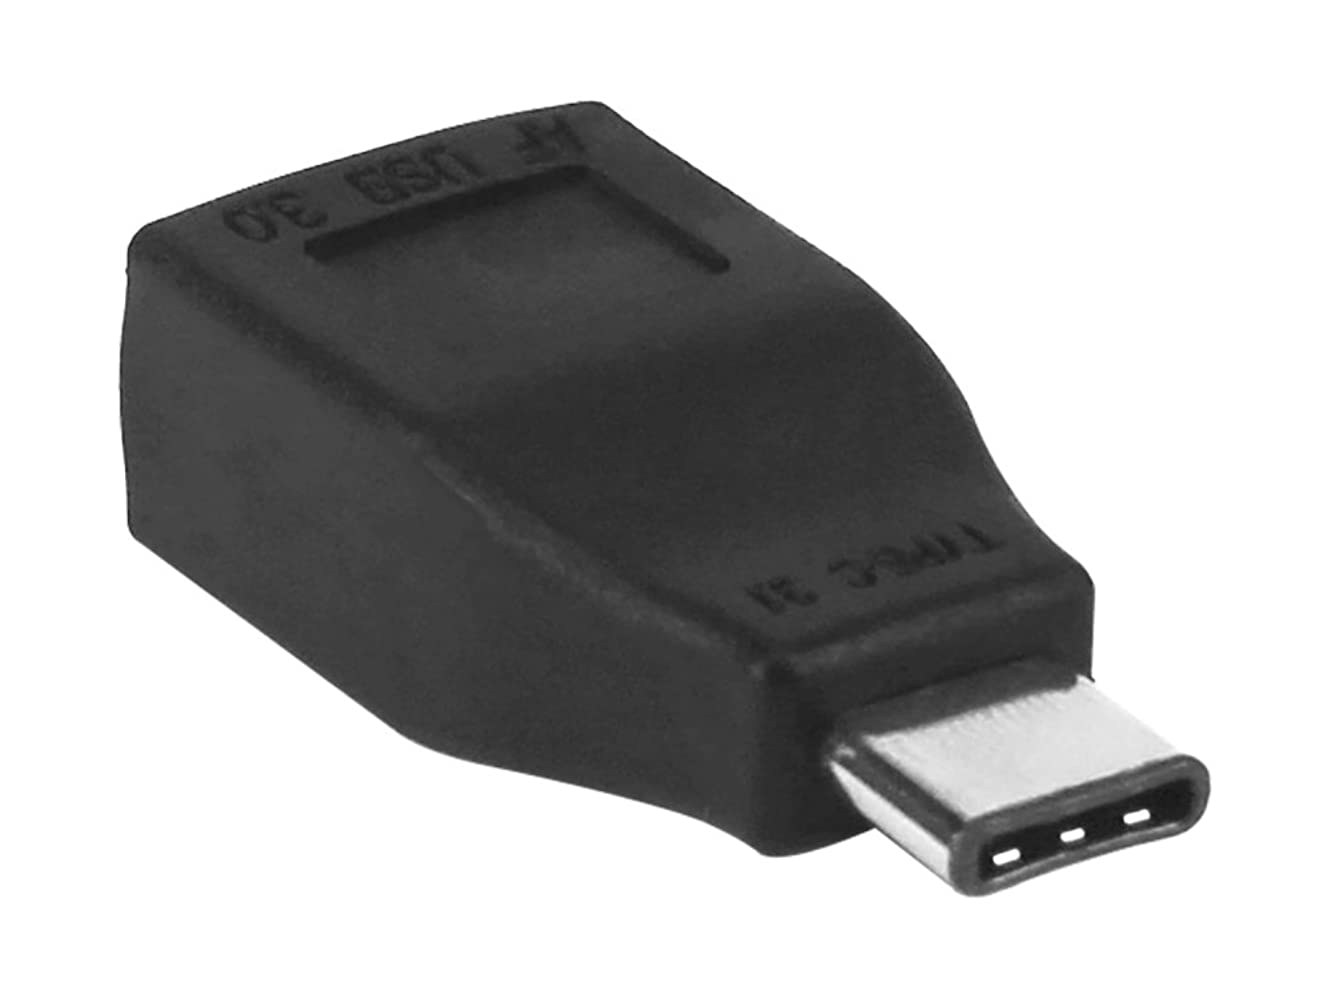 USB Type A to USB Type-C Adapter Converter Black Compatible with Alcatel 7